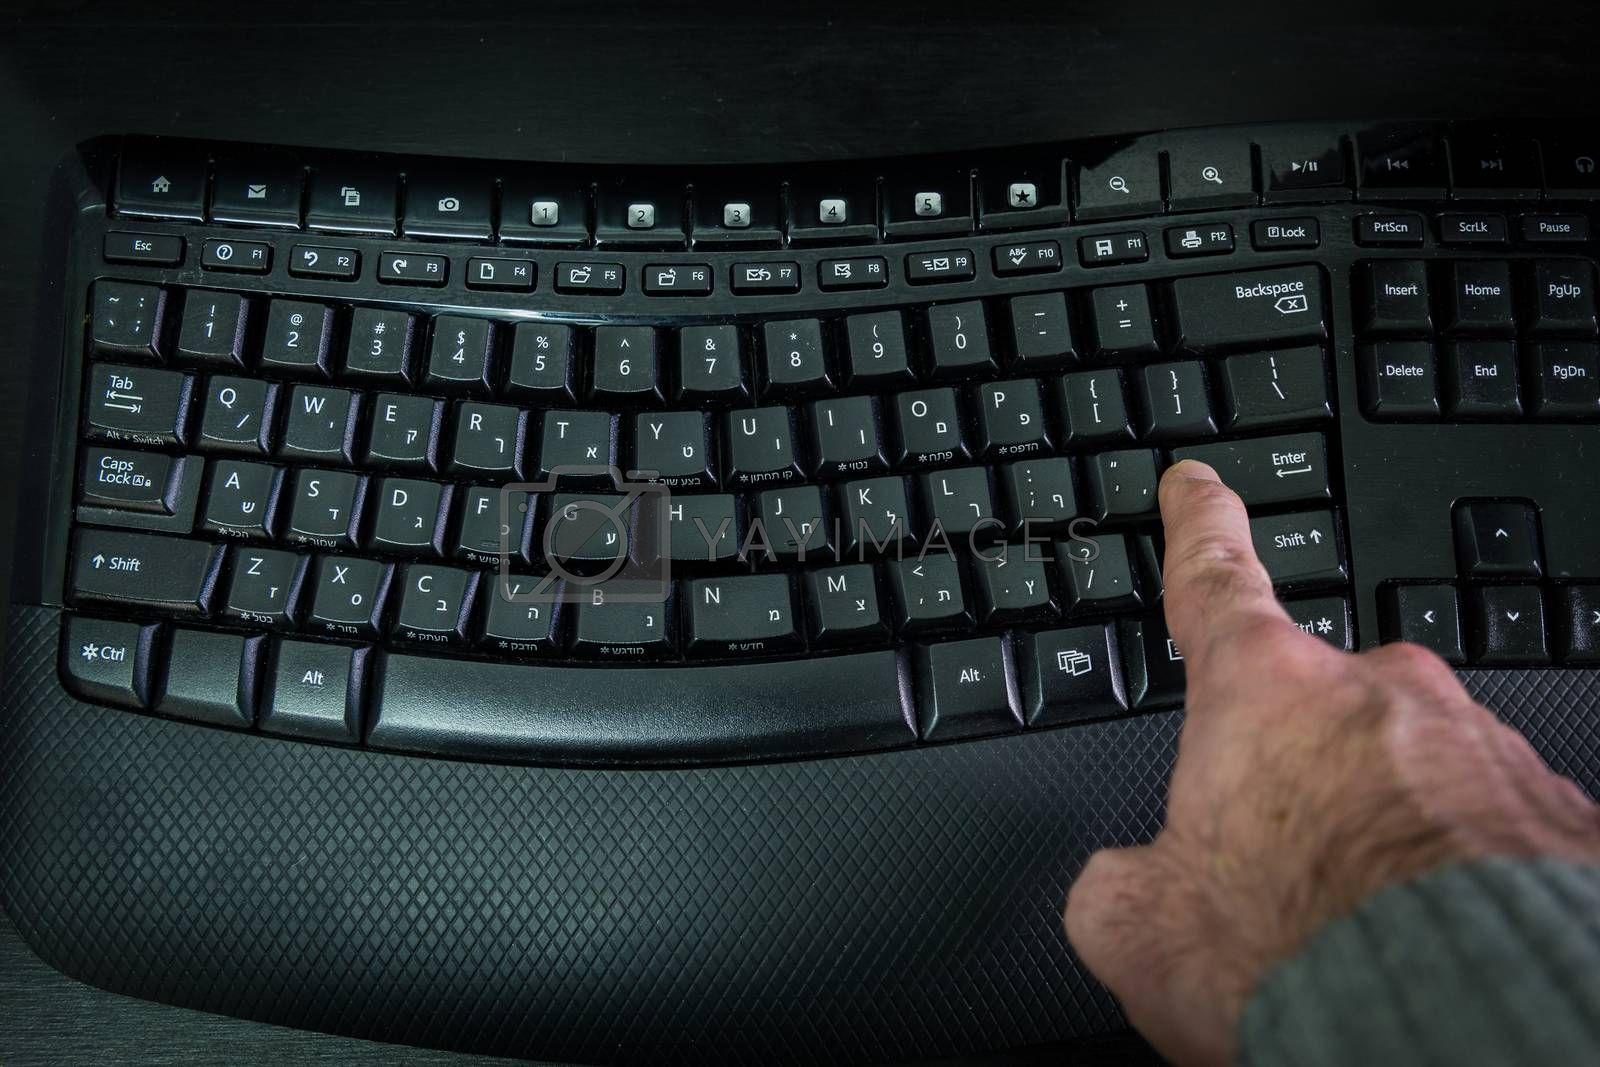 Man typing on a Wireless keyboard with letters in Hebrew and English - Press the Enter key - Top View - Dark atmosphere